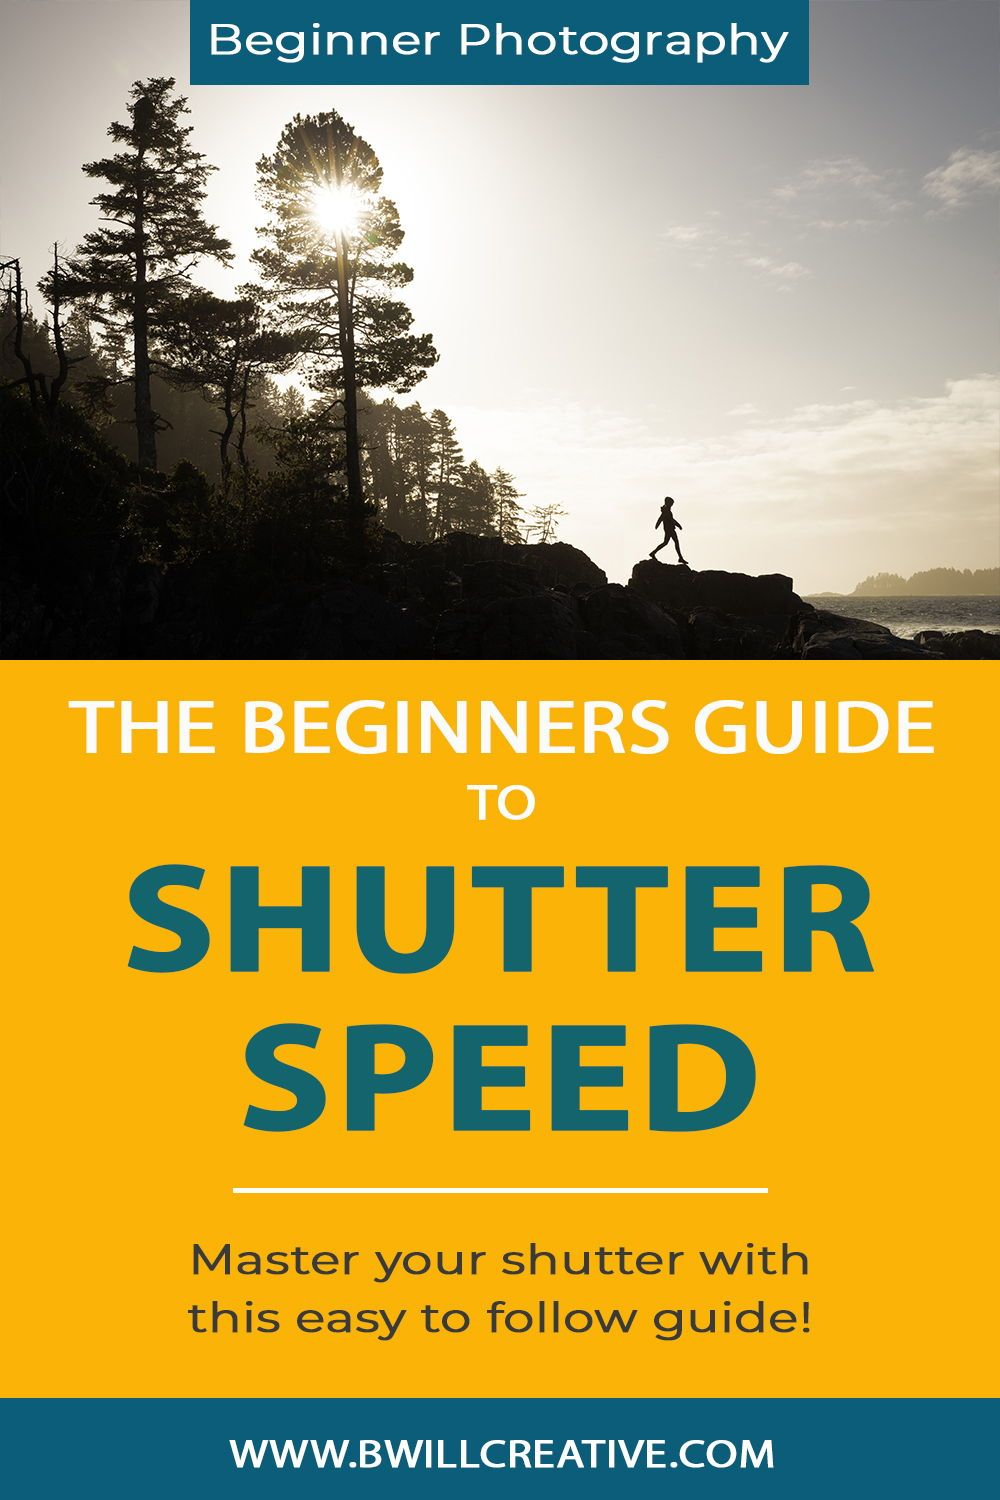 This in-depth guide will share everything you need to know about shutter speed in your photography. From its technical uses to understanding the amazing creative effects it can offer, this guide will make you feel more confident with your camera settings. Make shutter speed a breeze with this guide to shutter speed for beginner photographers. #CameraSettings #BeginnerPhotography #PhotographyTips #ManualModePhotography